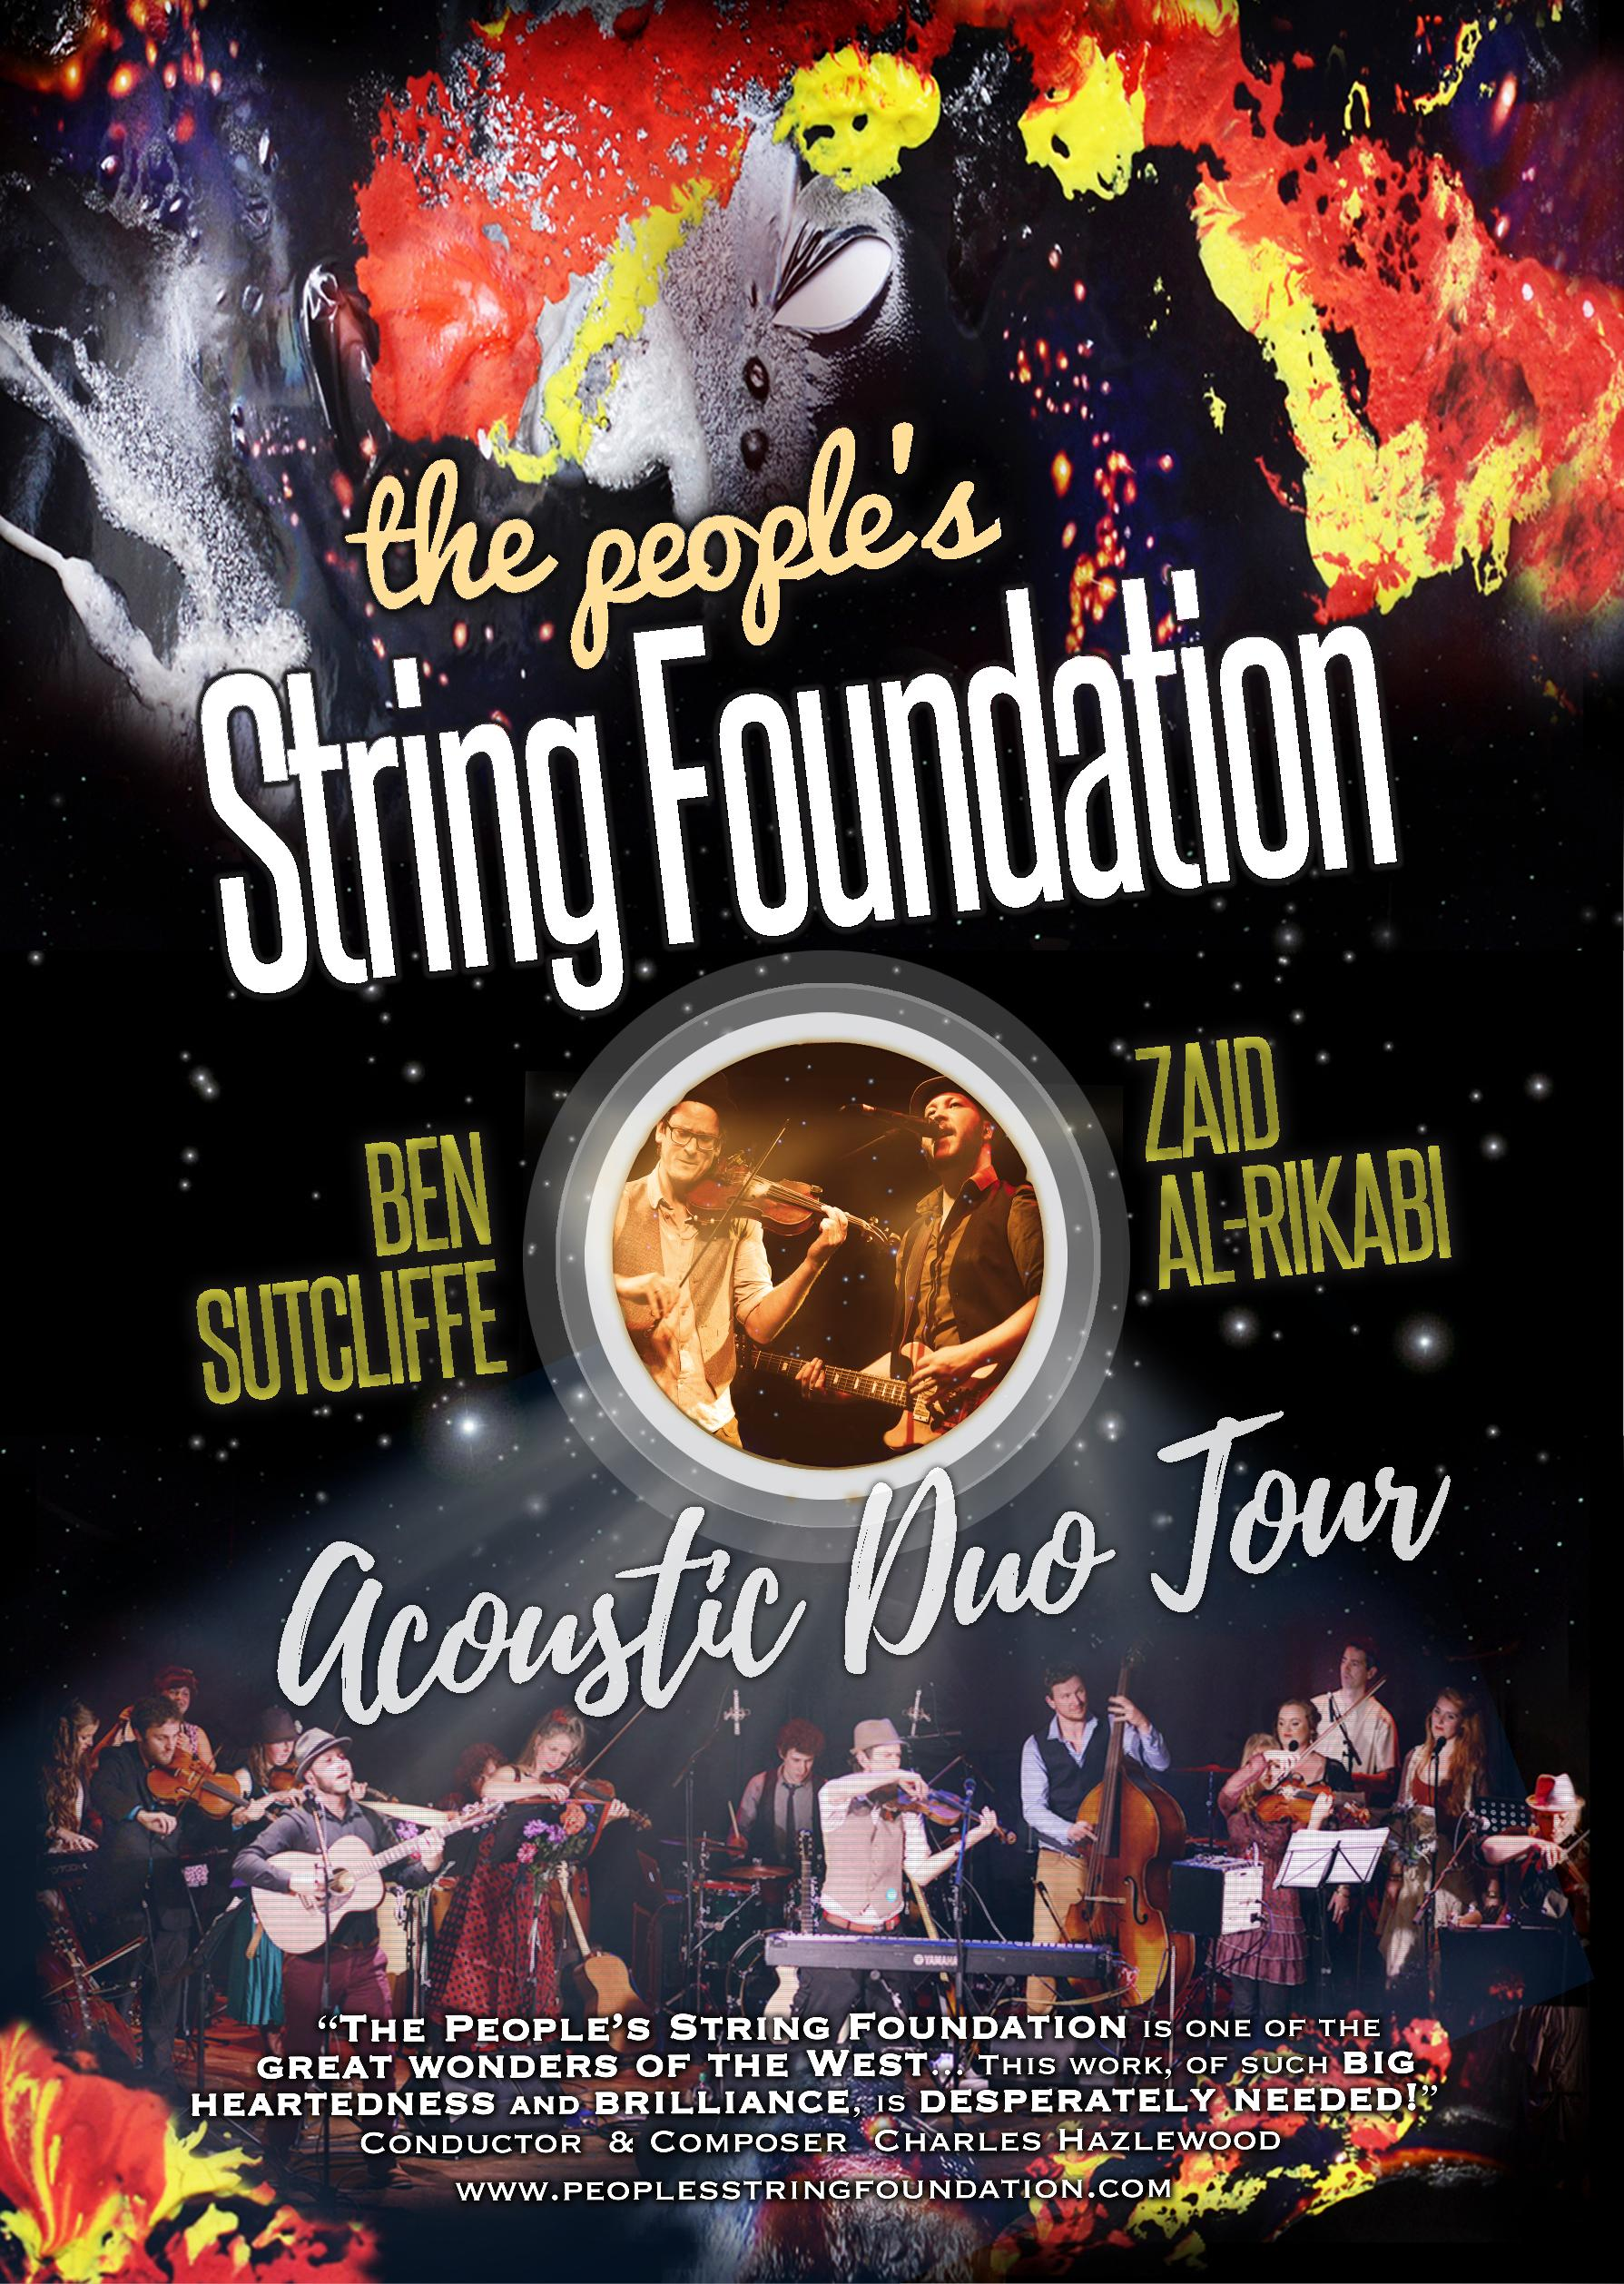 The Peoples String Foundation